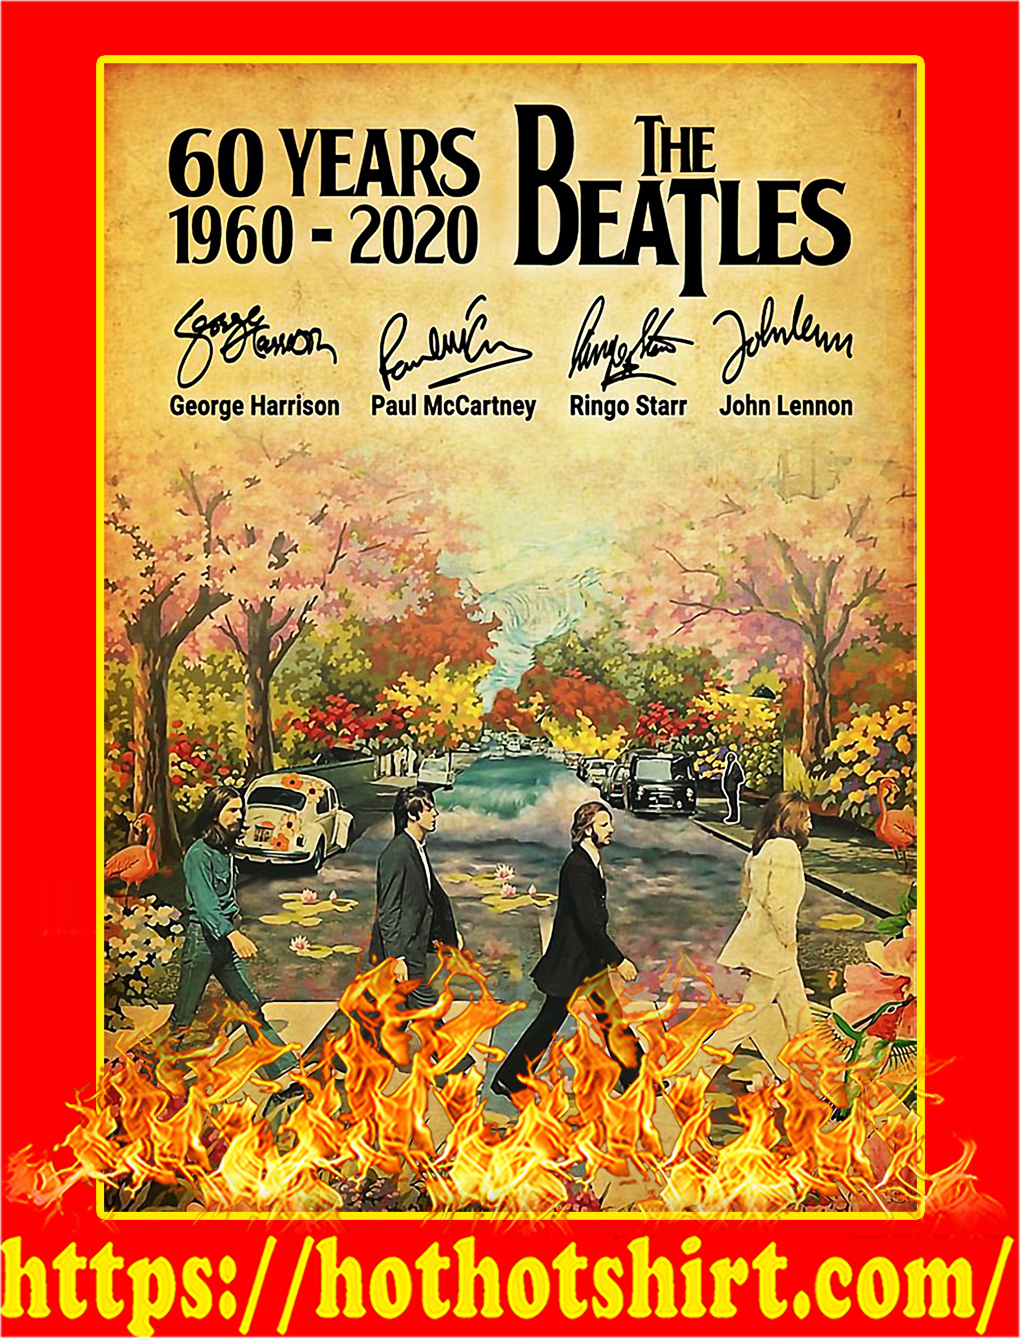 60 Years The Beatles 1960 2020 Signature Poster - A4